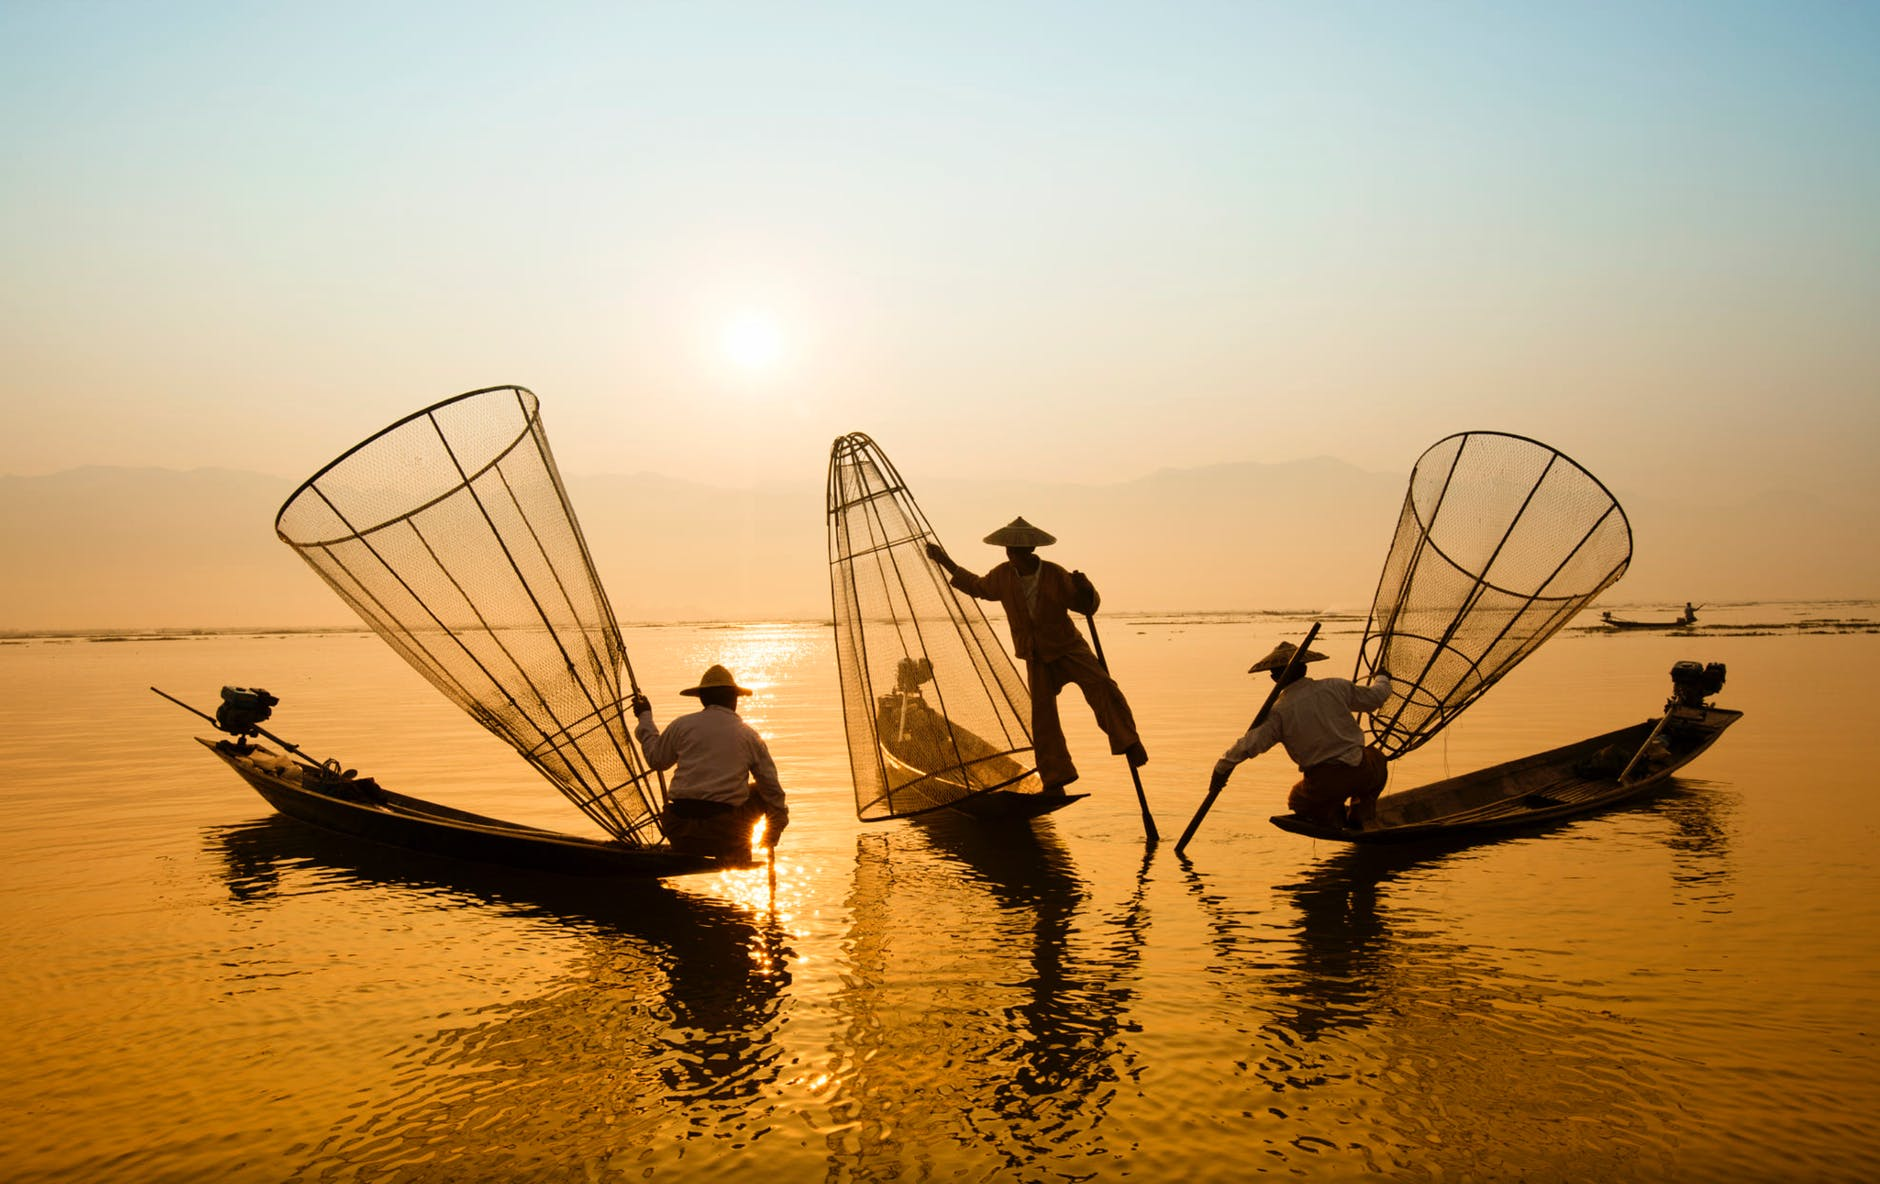 three men riding boats on body of water